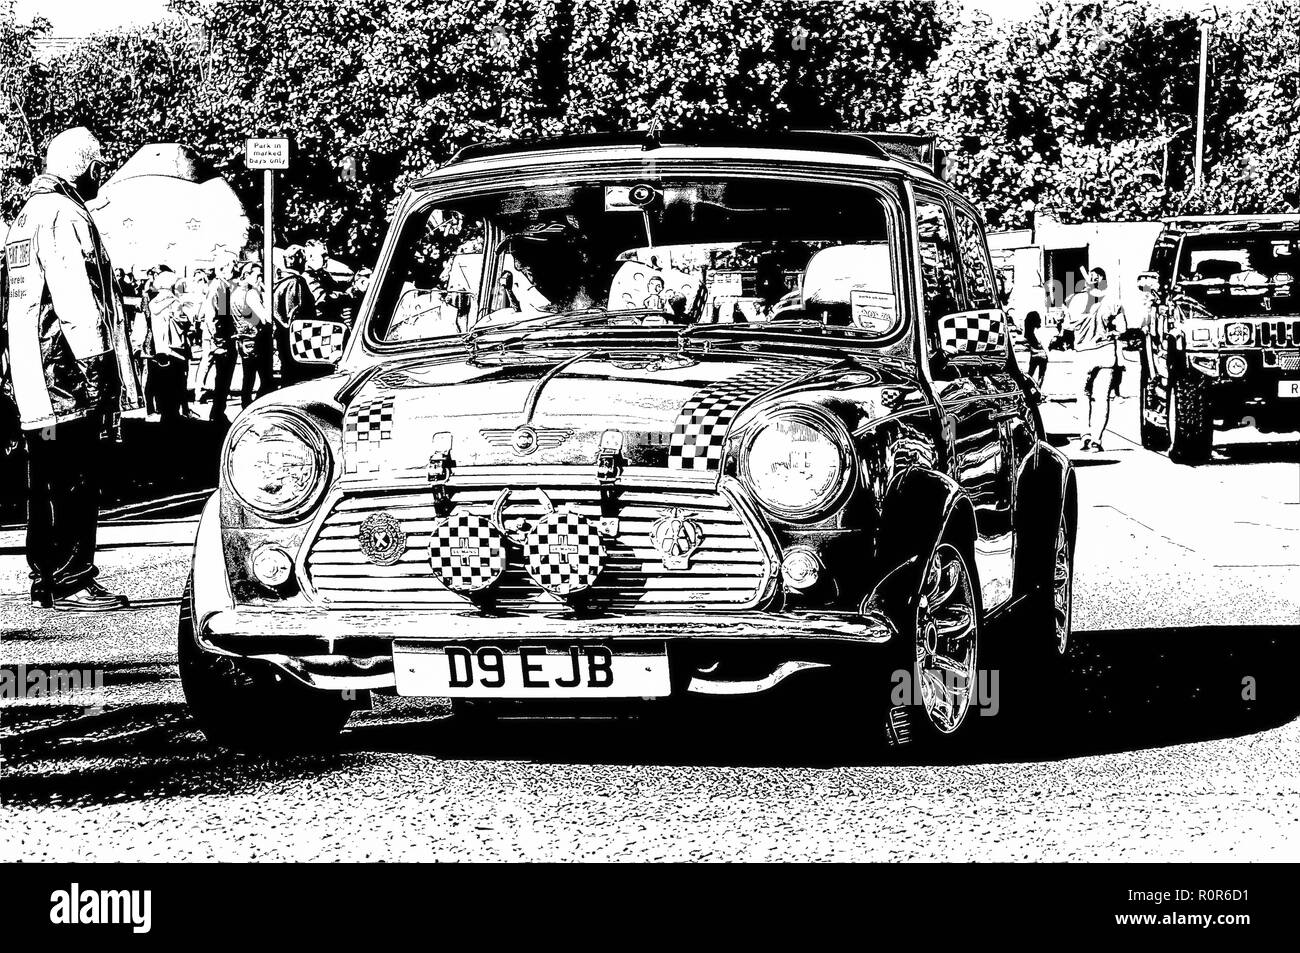 Digital pen & ink sketch of an Austin Mini on show at the Giffnock Village Classic Car Show, Glasgow, Scotland UK - Stock Image